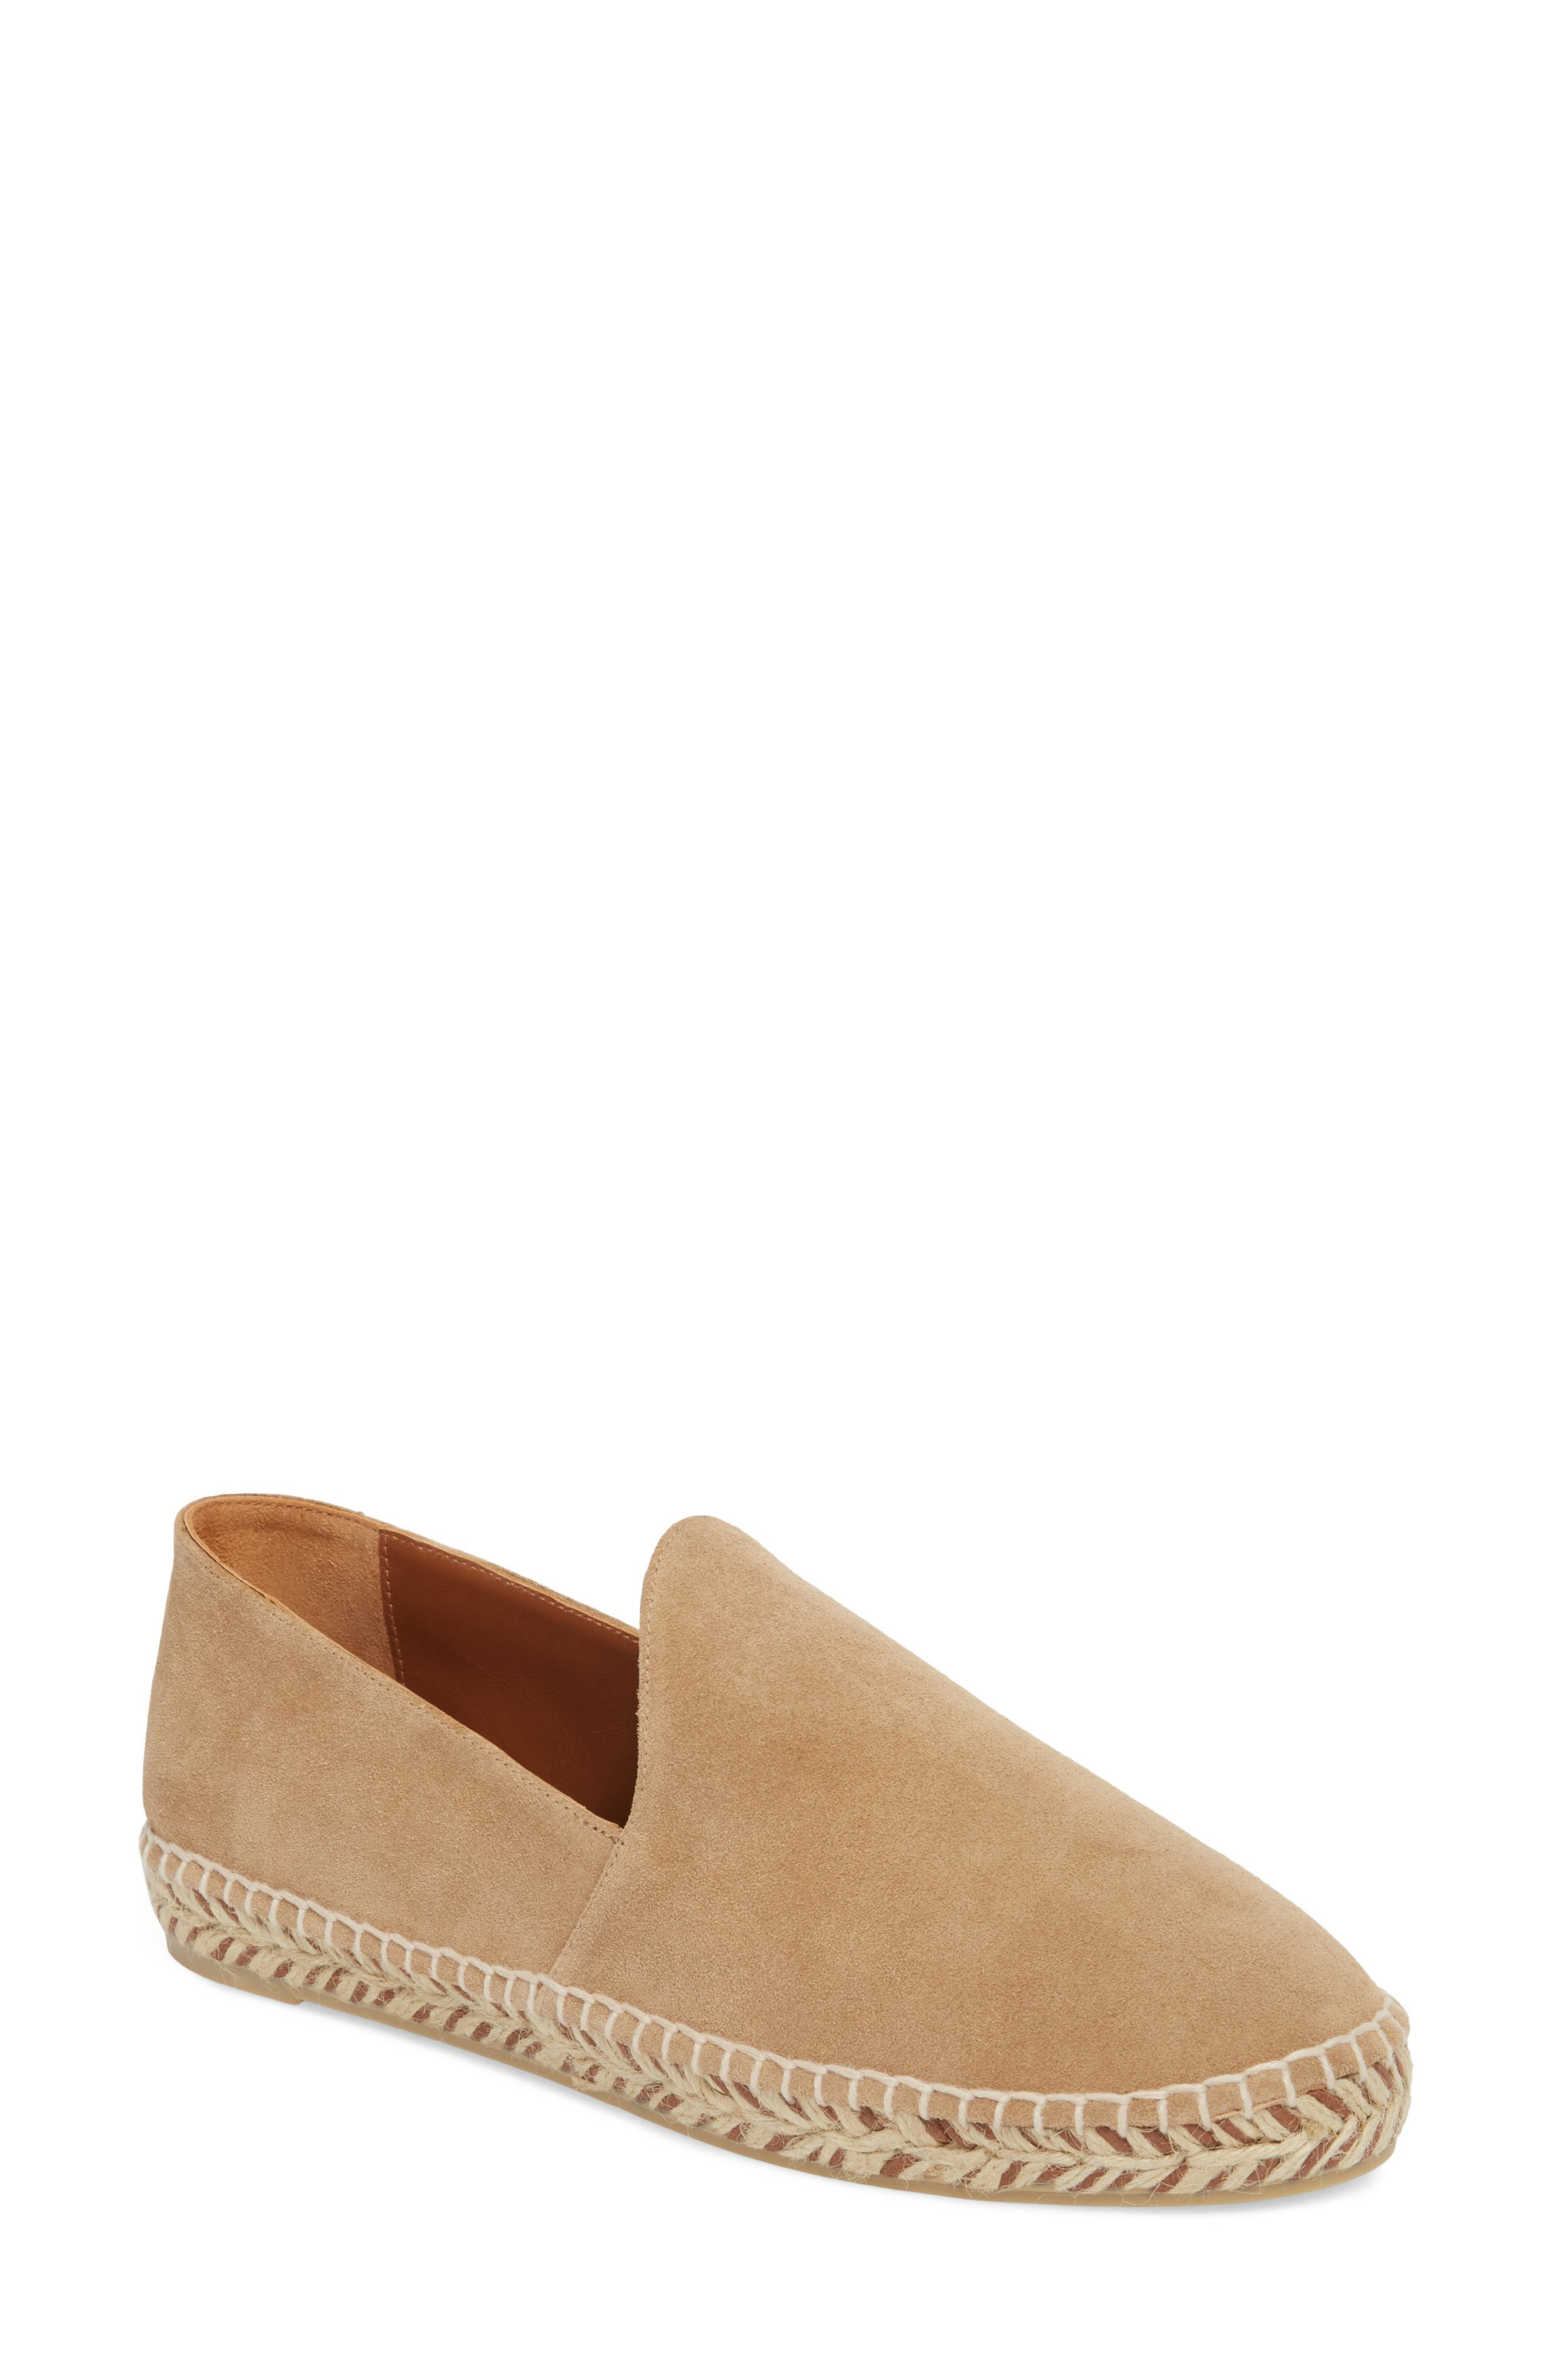 Haddie Espadrille Loafer,                             Main thumbnail 2, color,